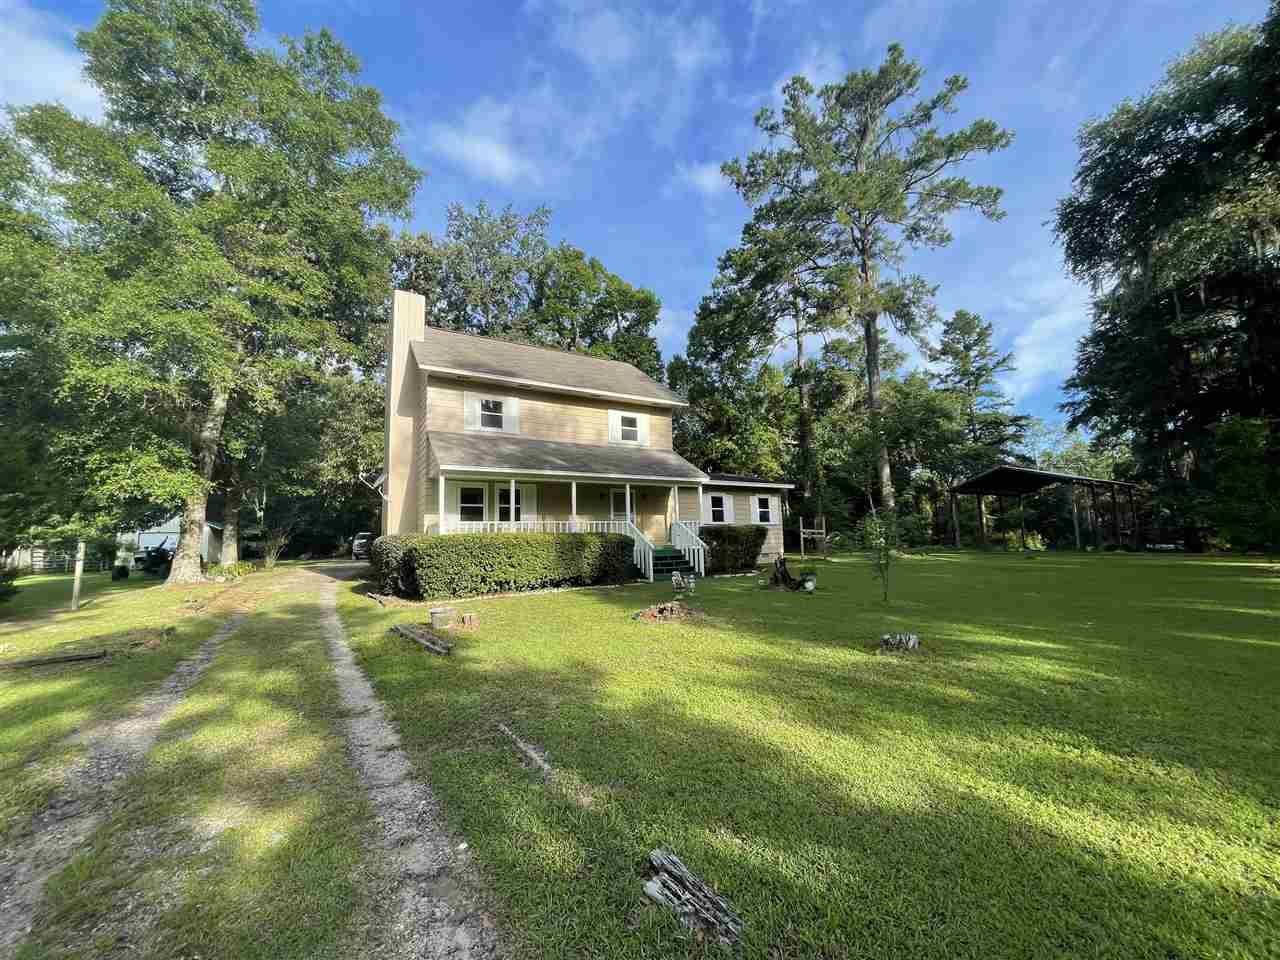 Photo of 12124 Whitehouse Road, TALLAHASSEE, FL 32317 (MLS # 334367)